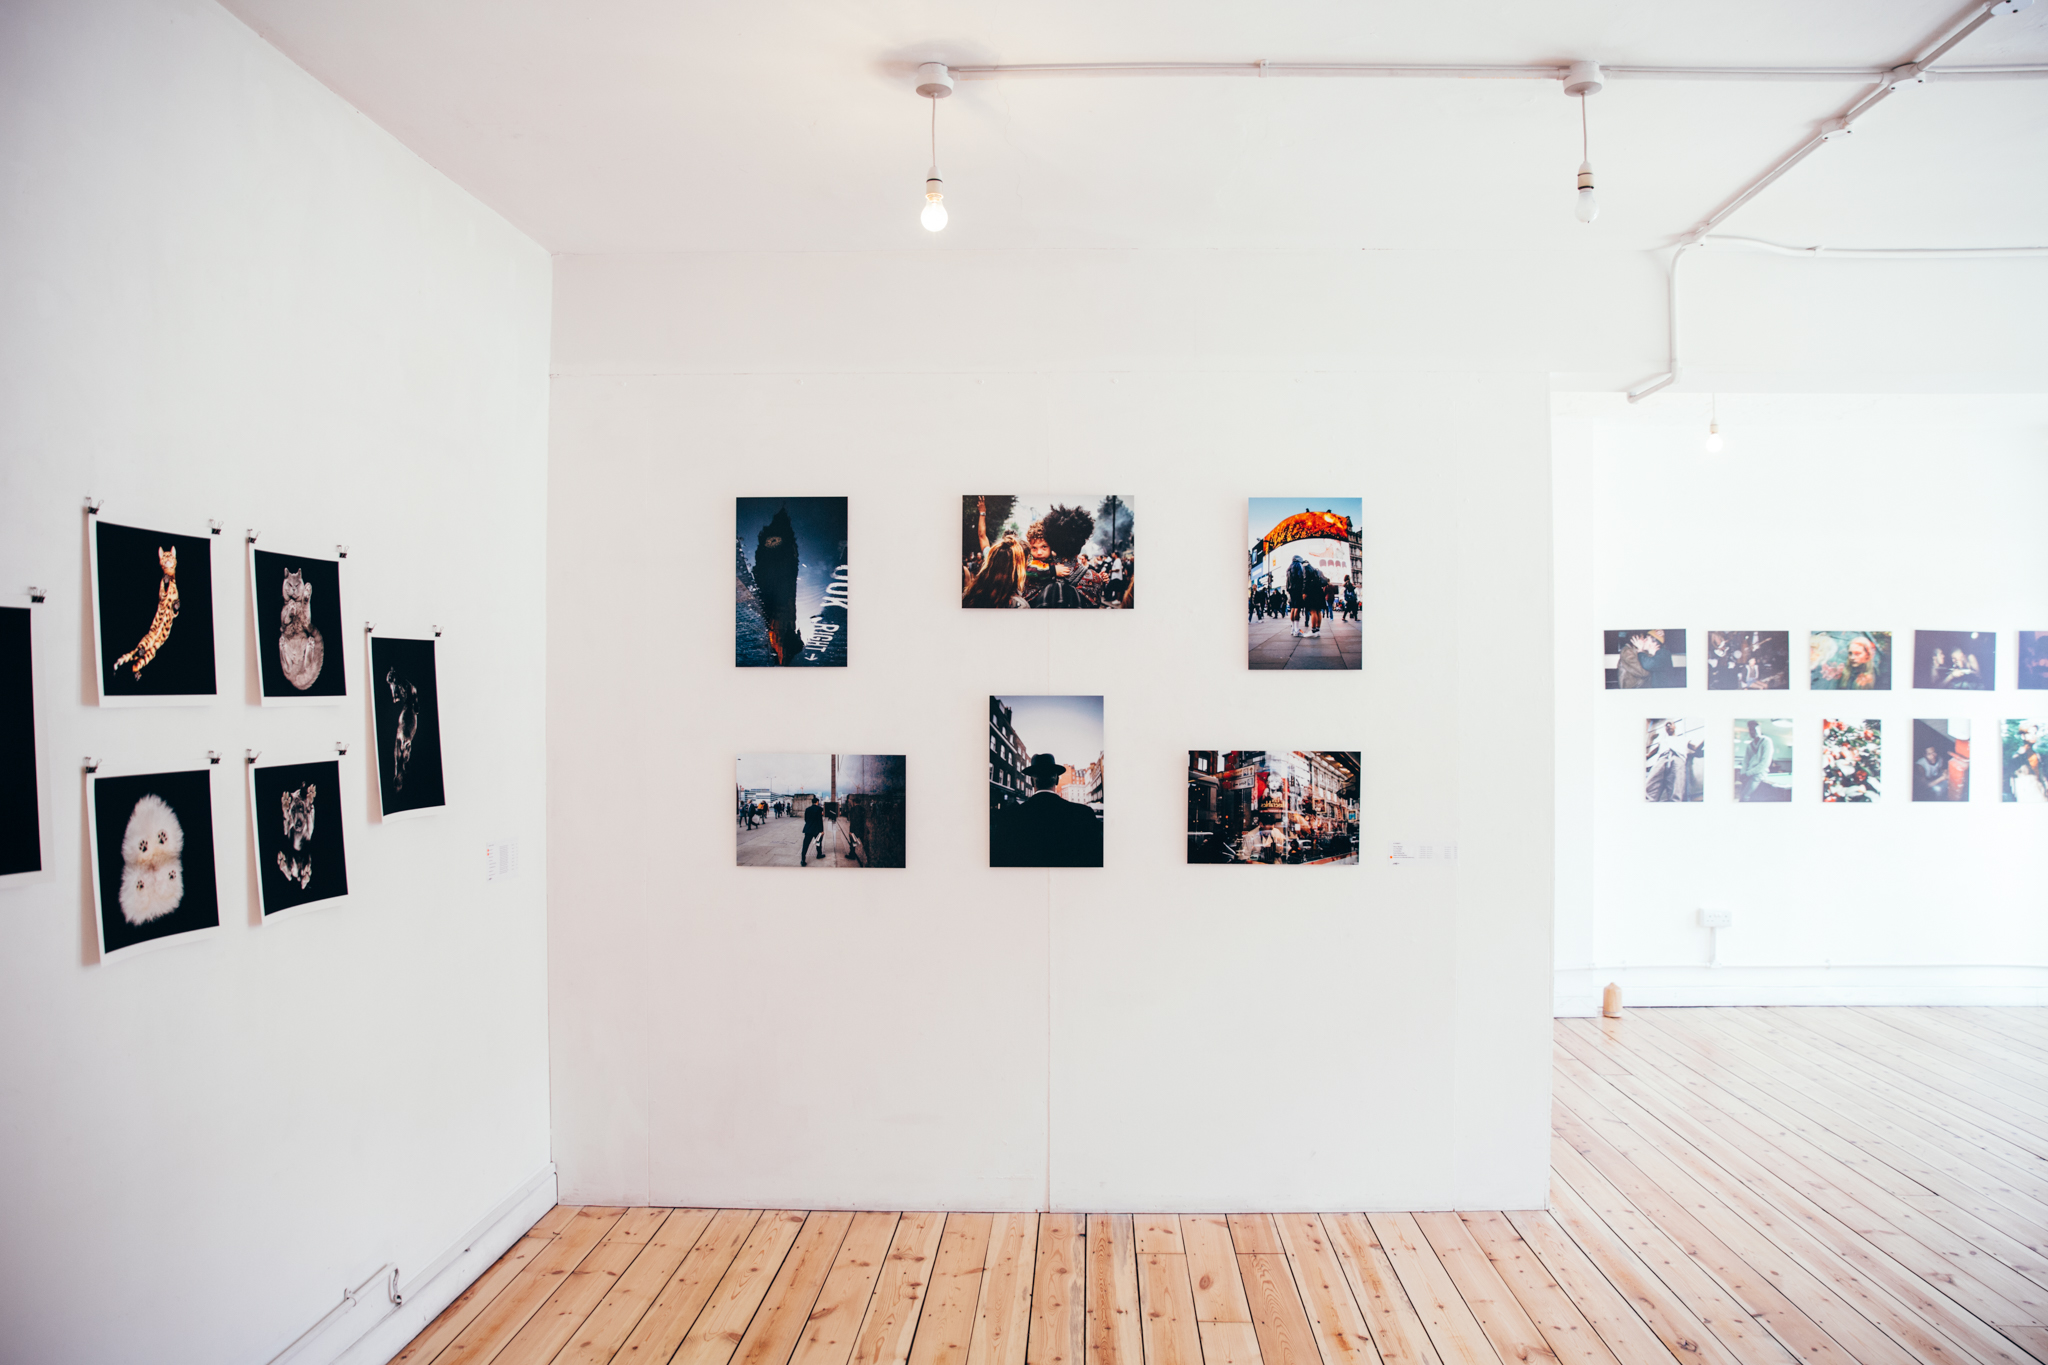 The Brick Lane Gallery - LDN - - PHOTOGRAPHY NOW Exhibition, May 17Showcasing a selection of 6 street photographs from my first year as a photographer.